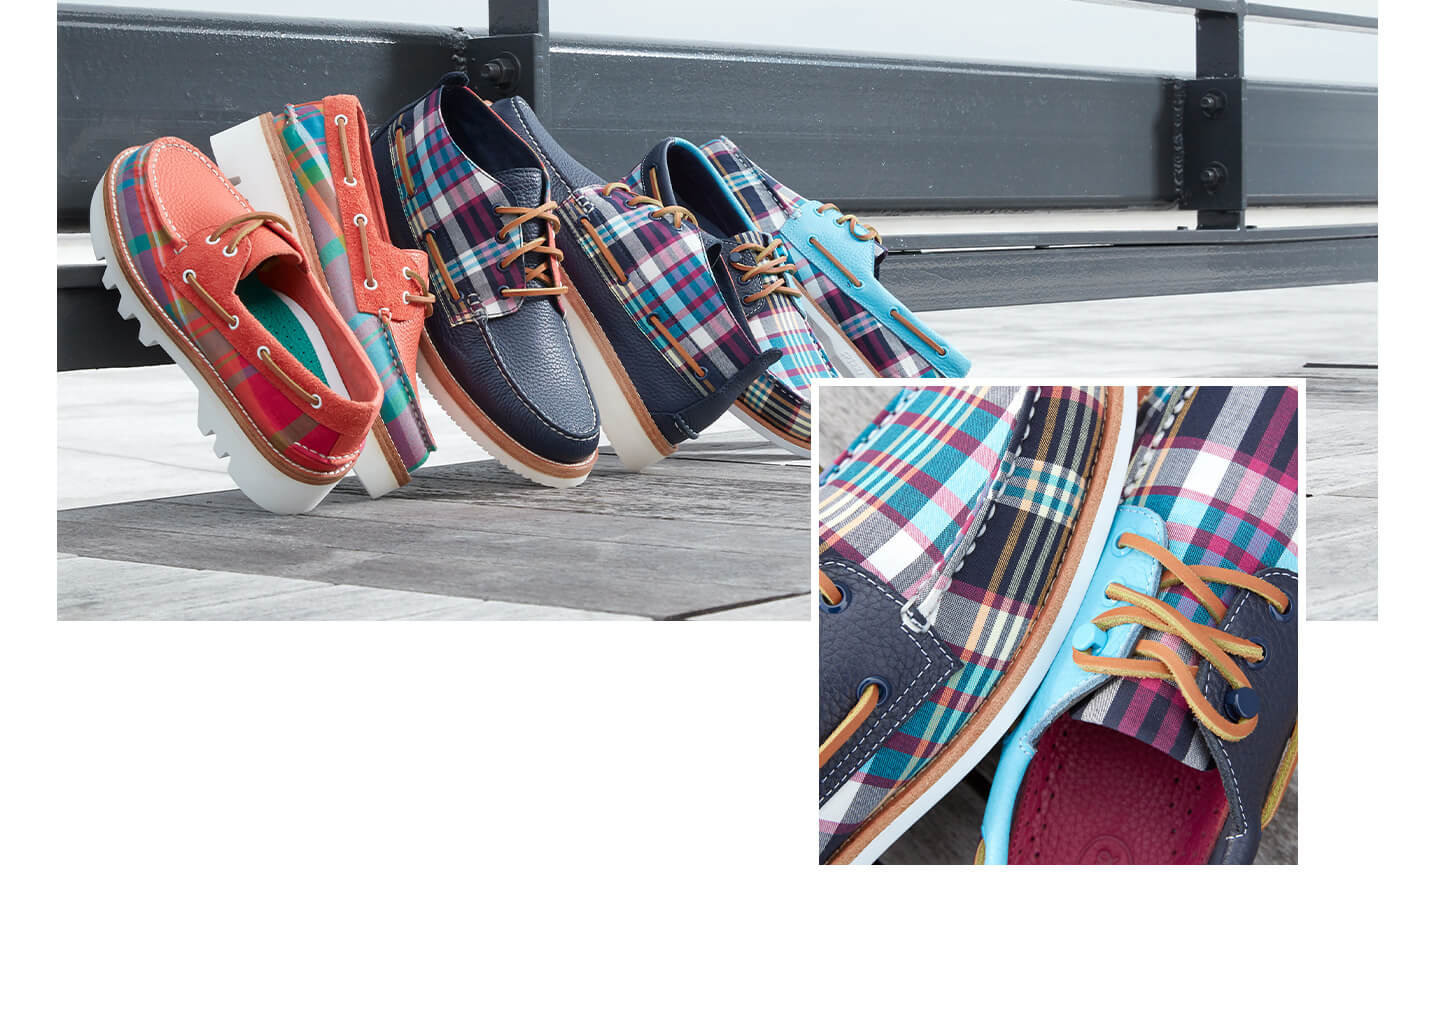 Collage of shoes from the Madras collection.